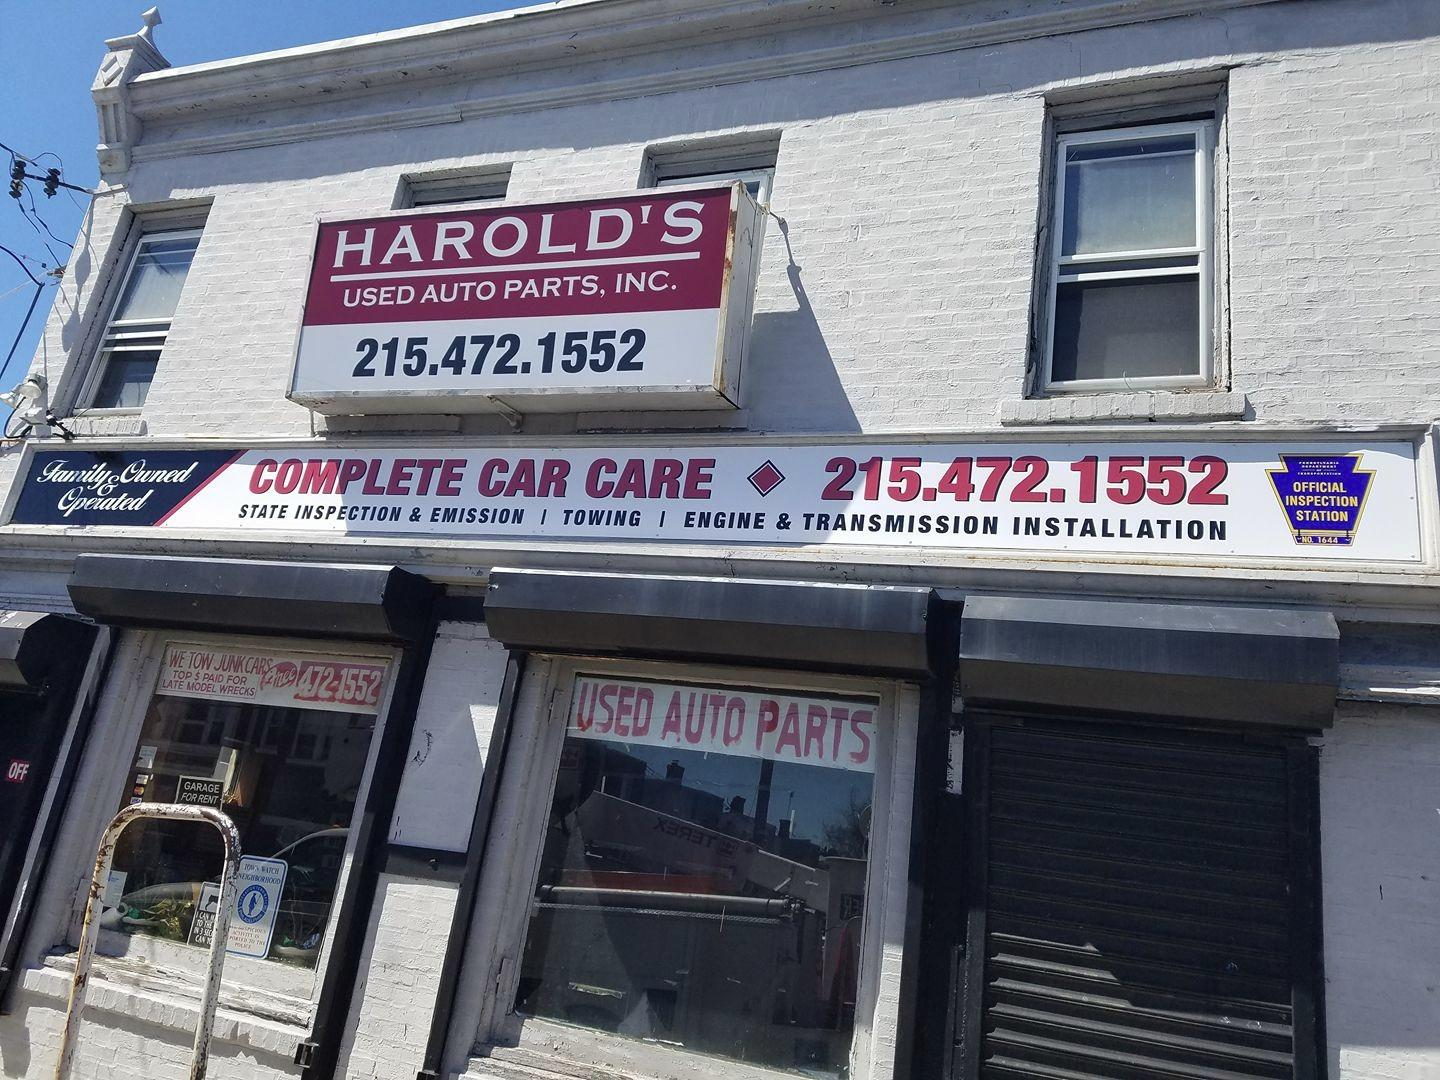 Harold's Used Auto Parts, Inc. is a small family owned business in Southwest Philly. Started over 30 years ago, Harold Sr. worked diligently to build a business based on loyalty,trust and affordability for his customers.